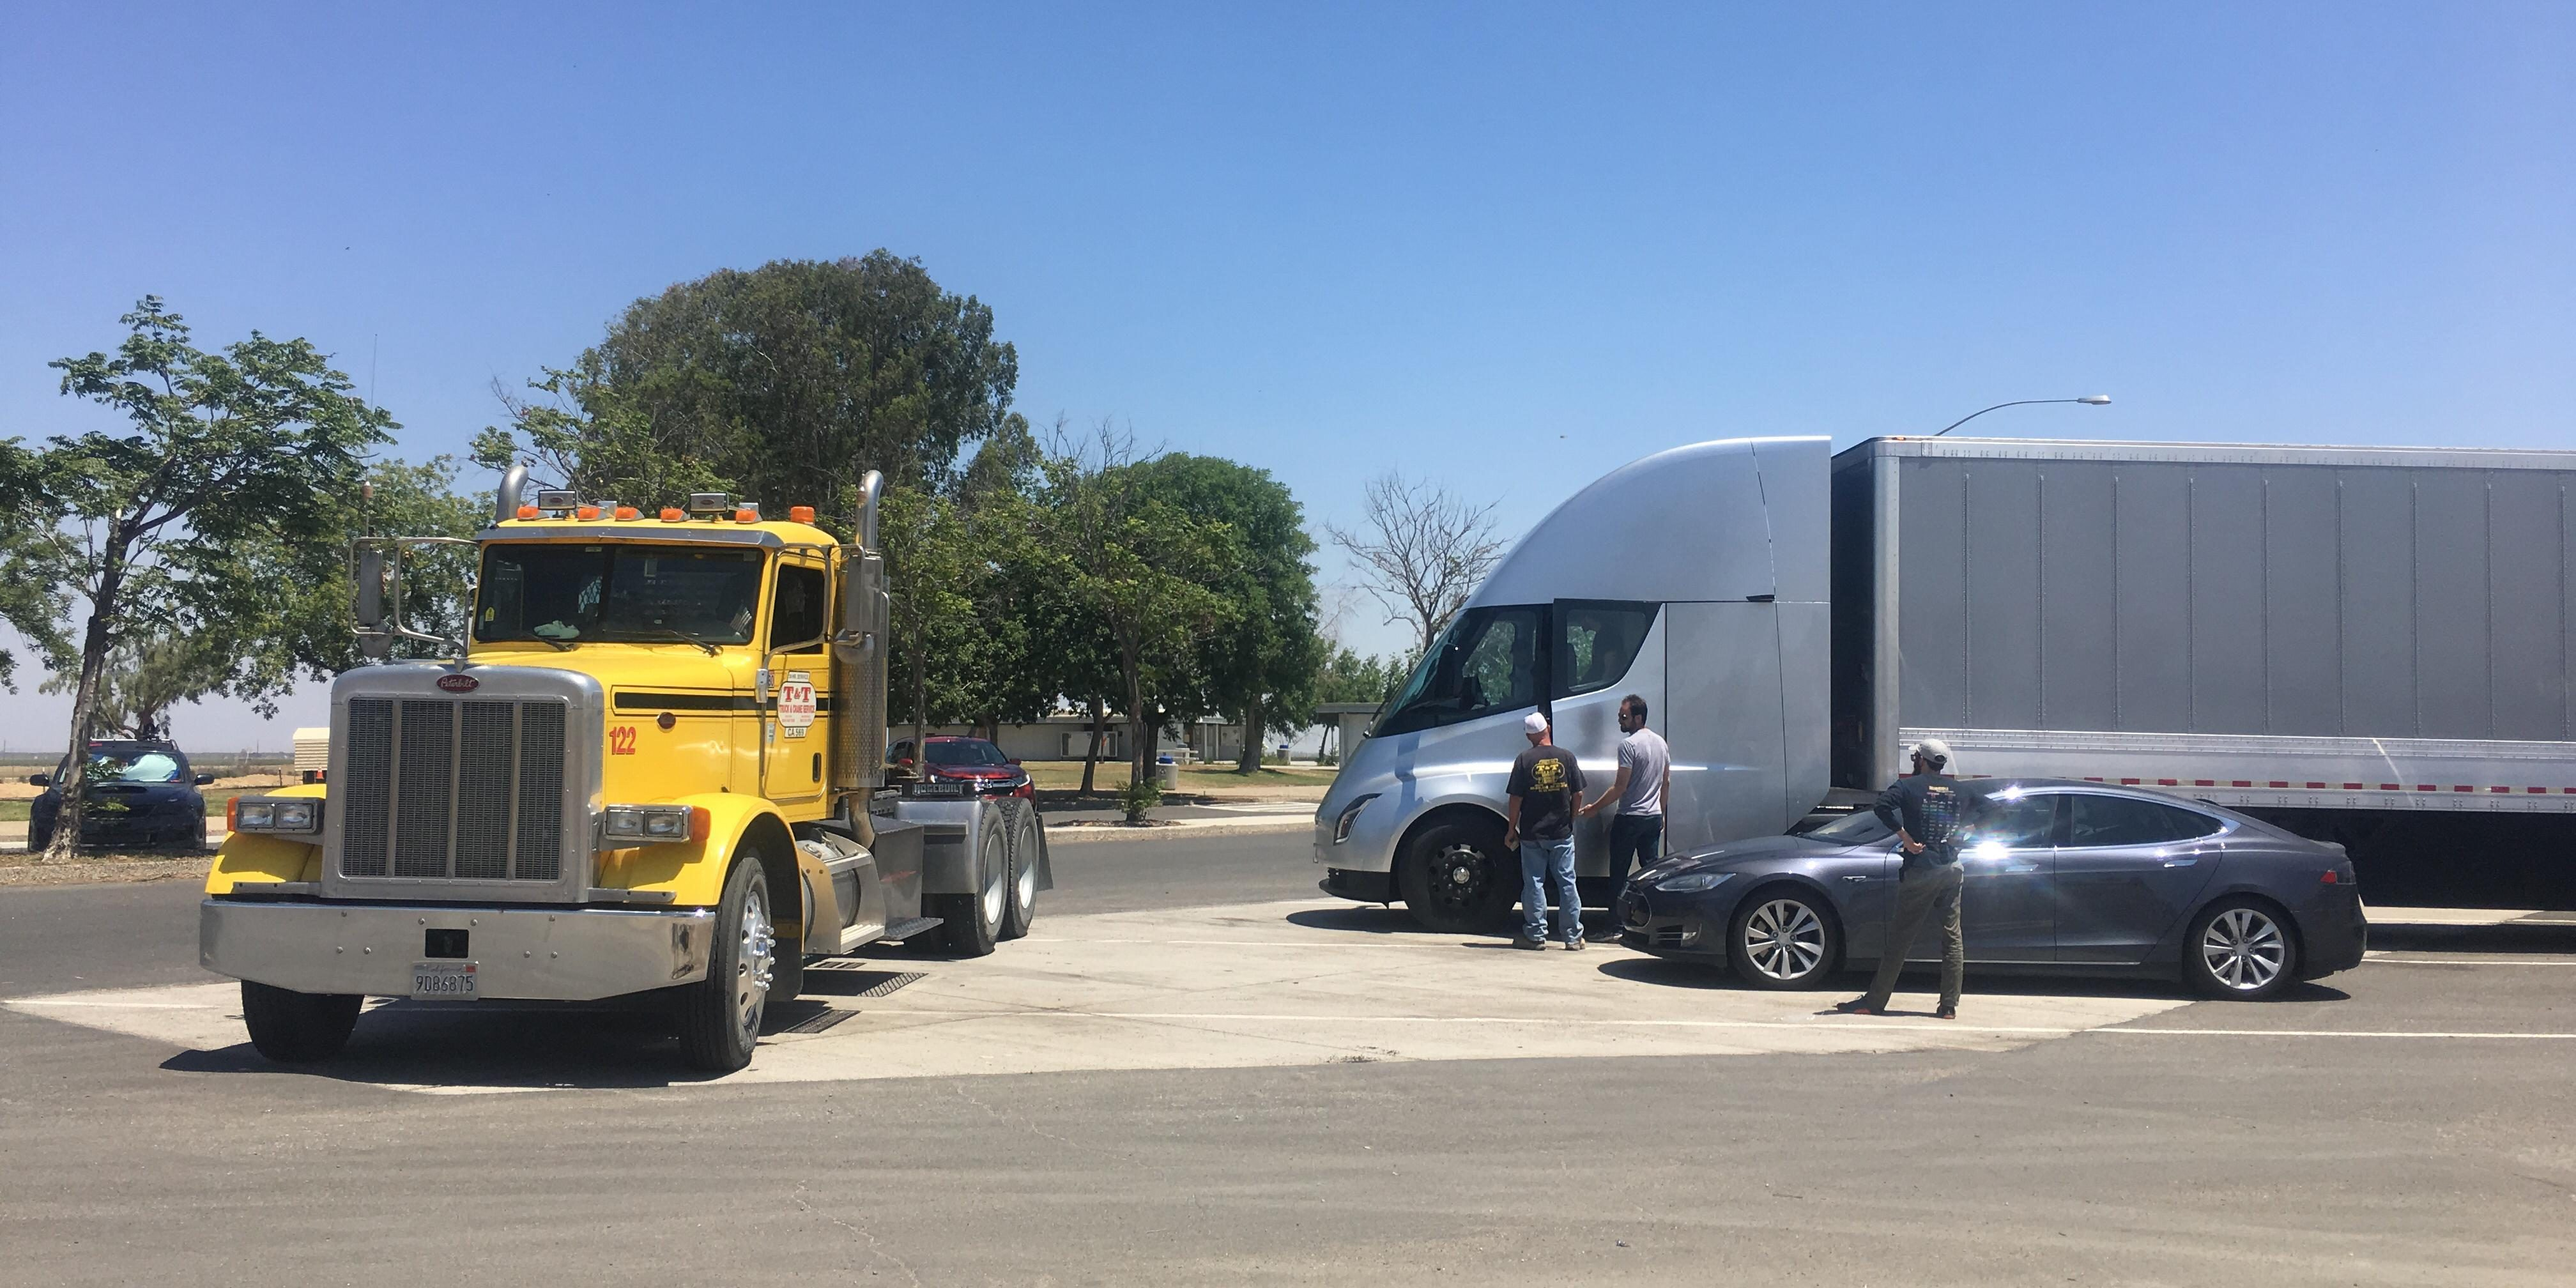 Tesla Semi is not impressing the diesel truck industry, 'where's the proof?', they say